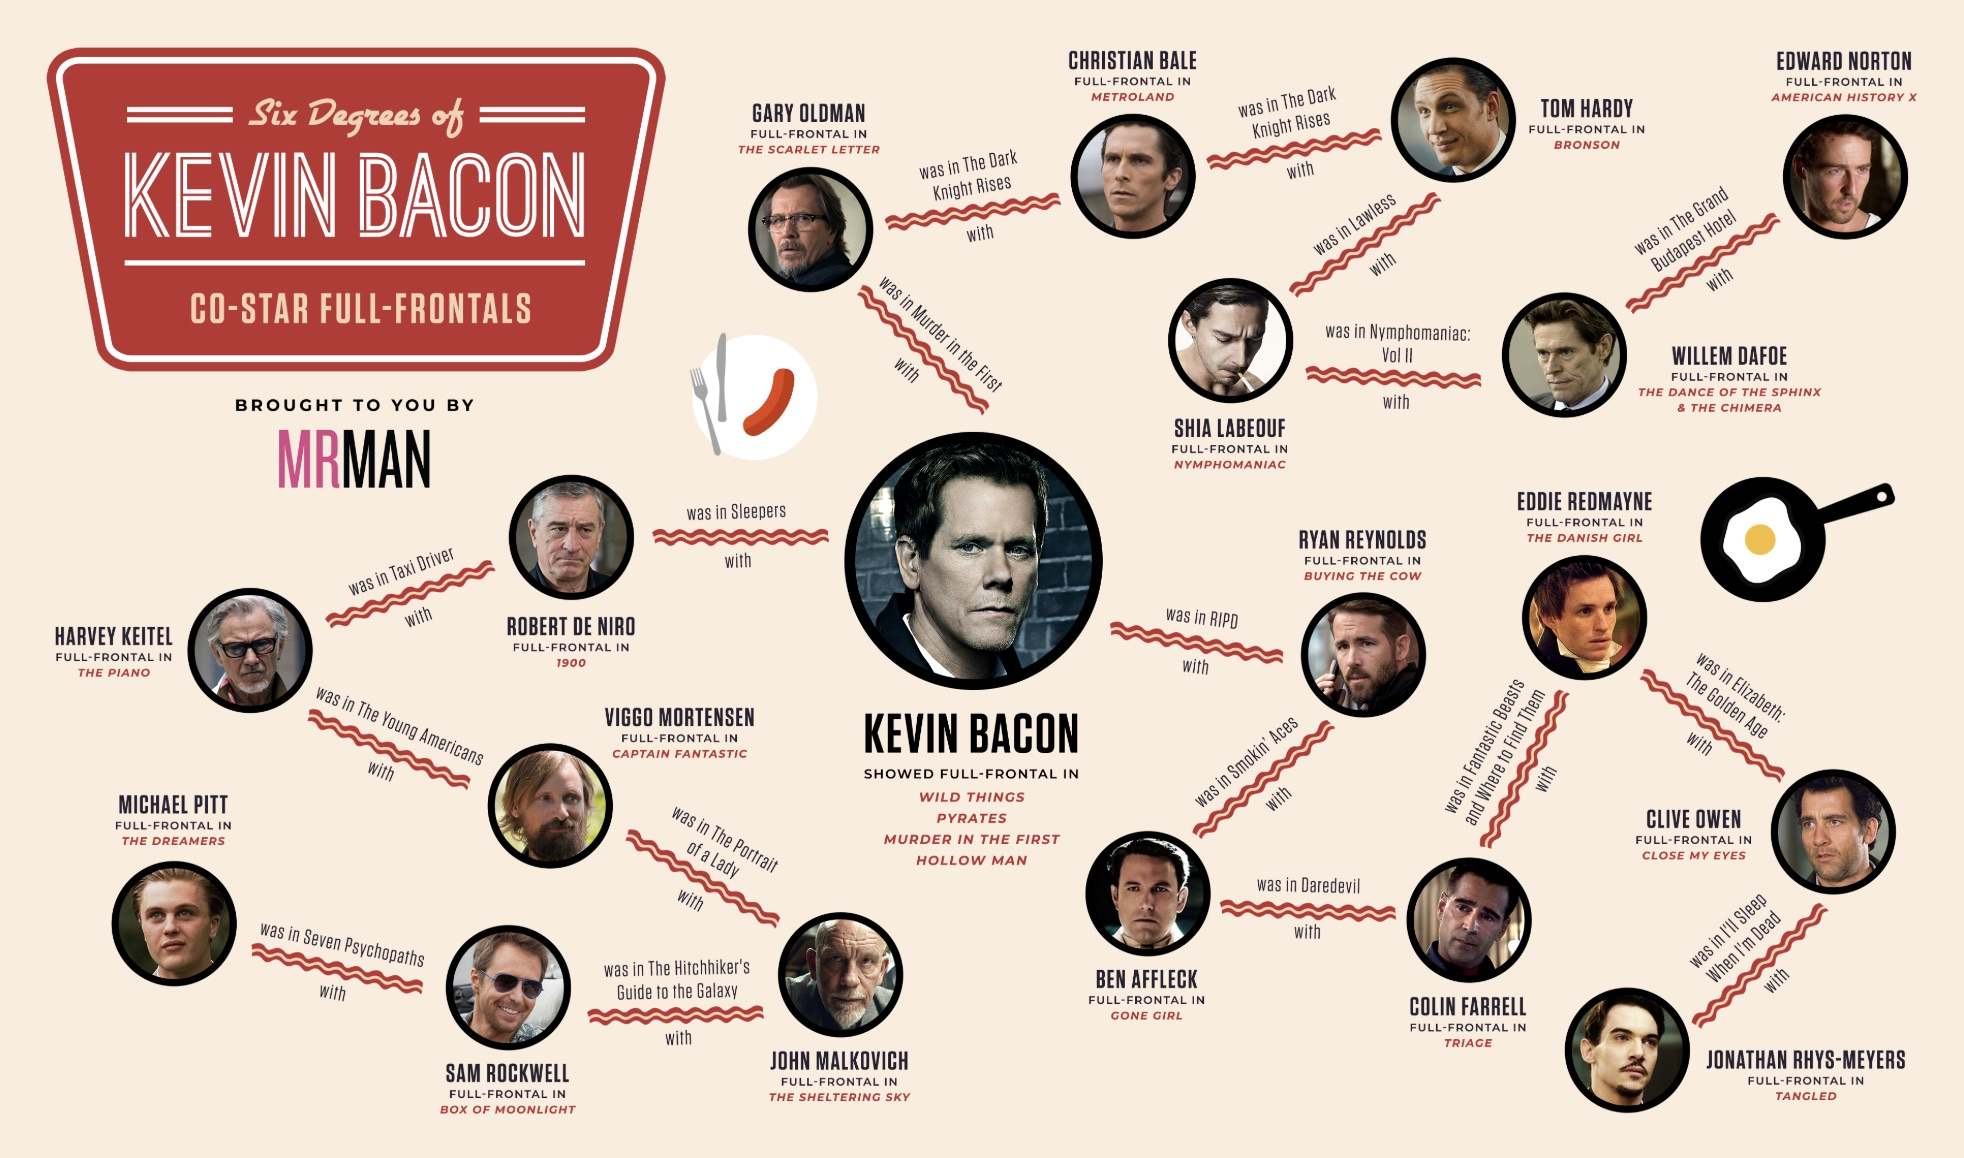 kevin bacon nude infographic international bacon day